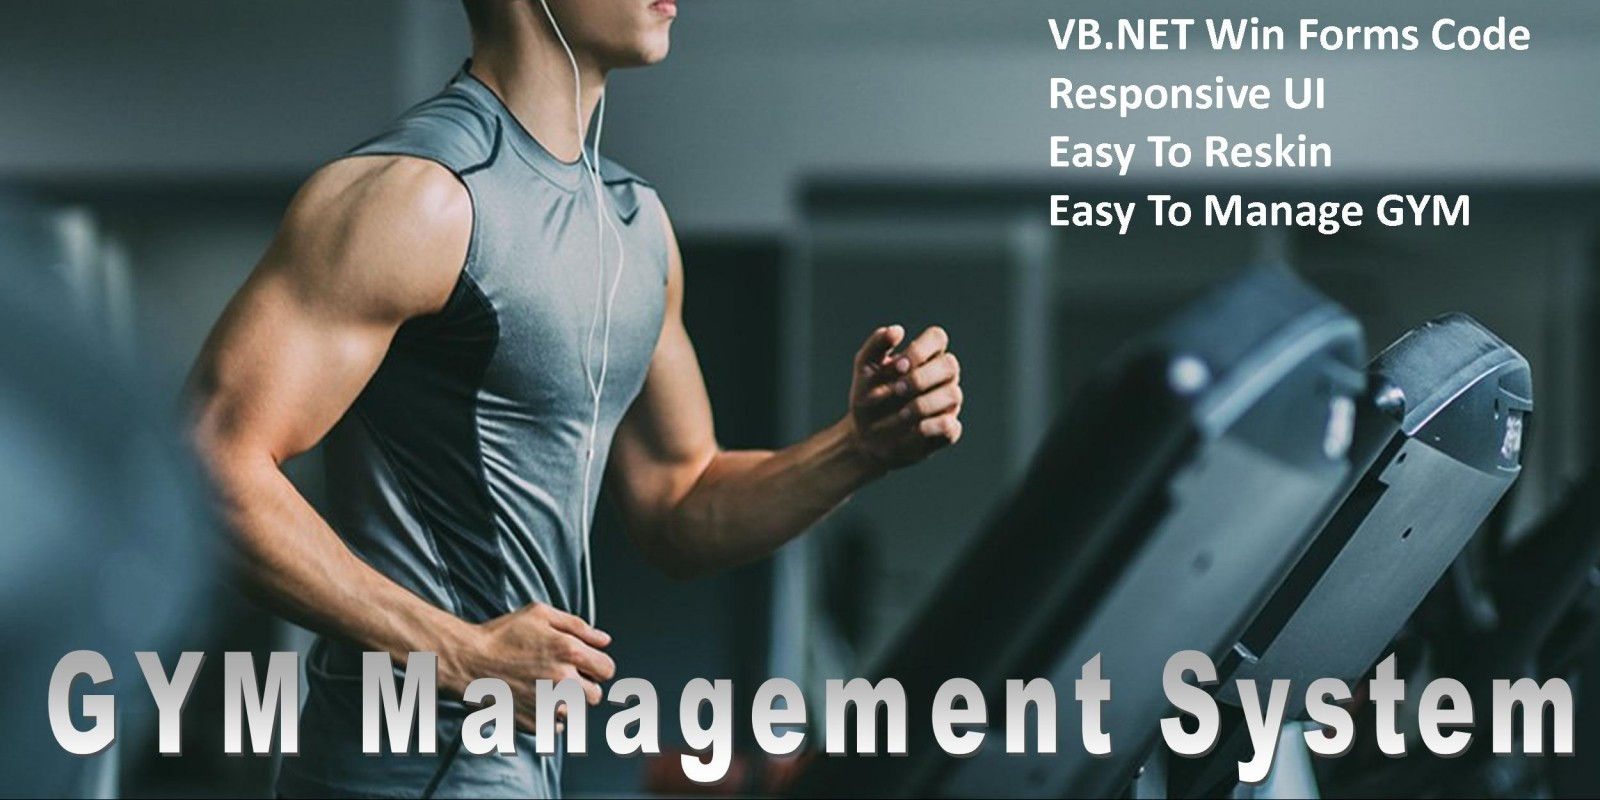 Gym Management System - VB.NET Win Forms